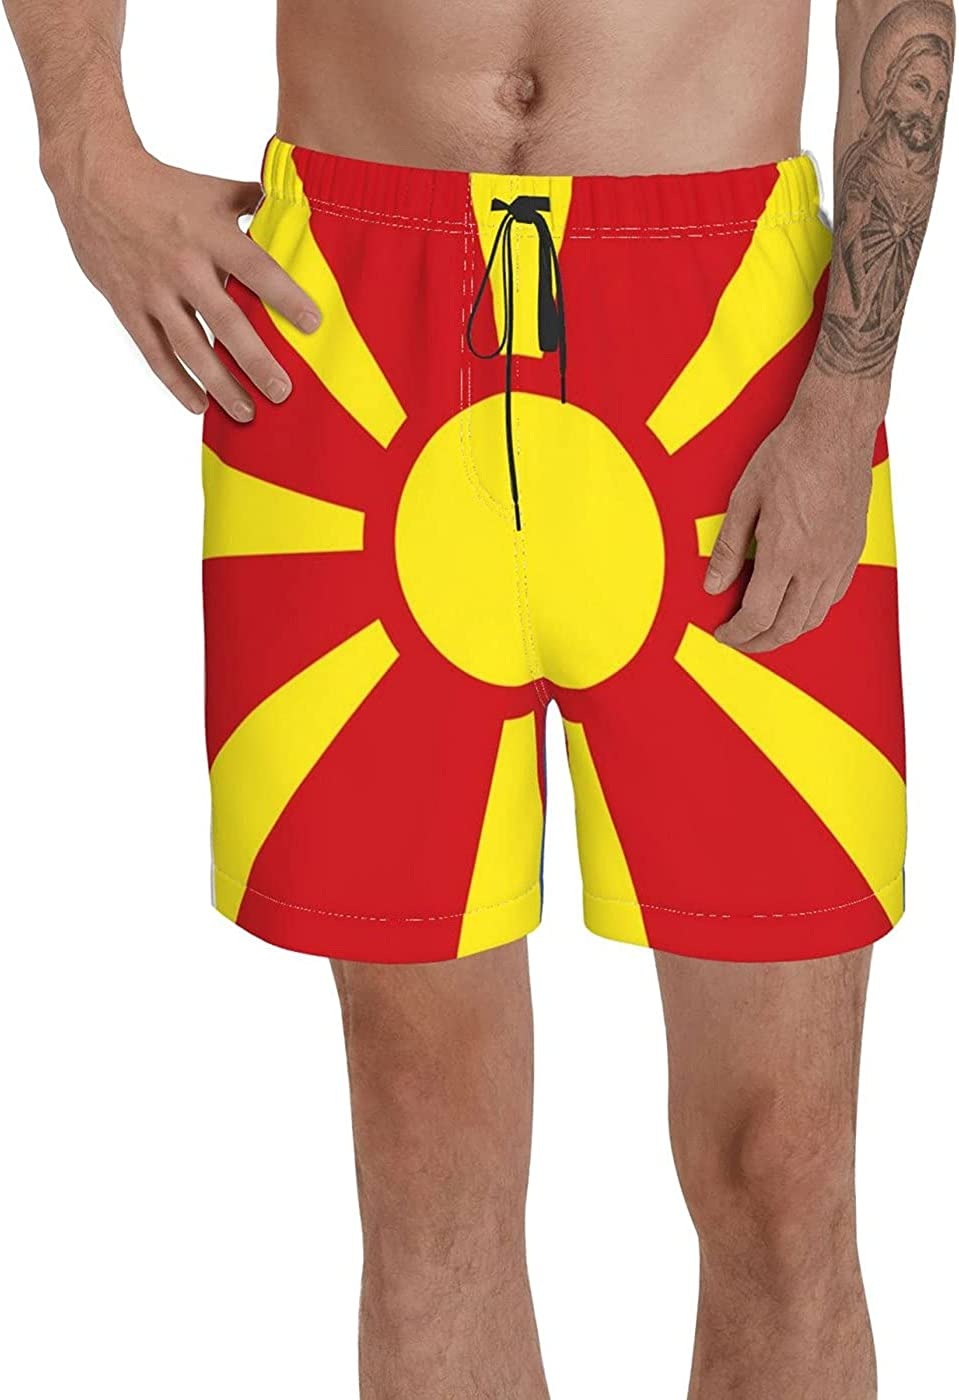 Count Macedonia Flag Men's 3D Printed Funny Summer Quick Dry Swim Short Board Shorts with